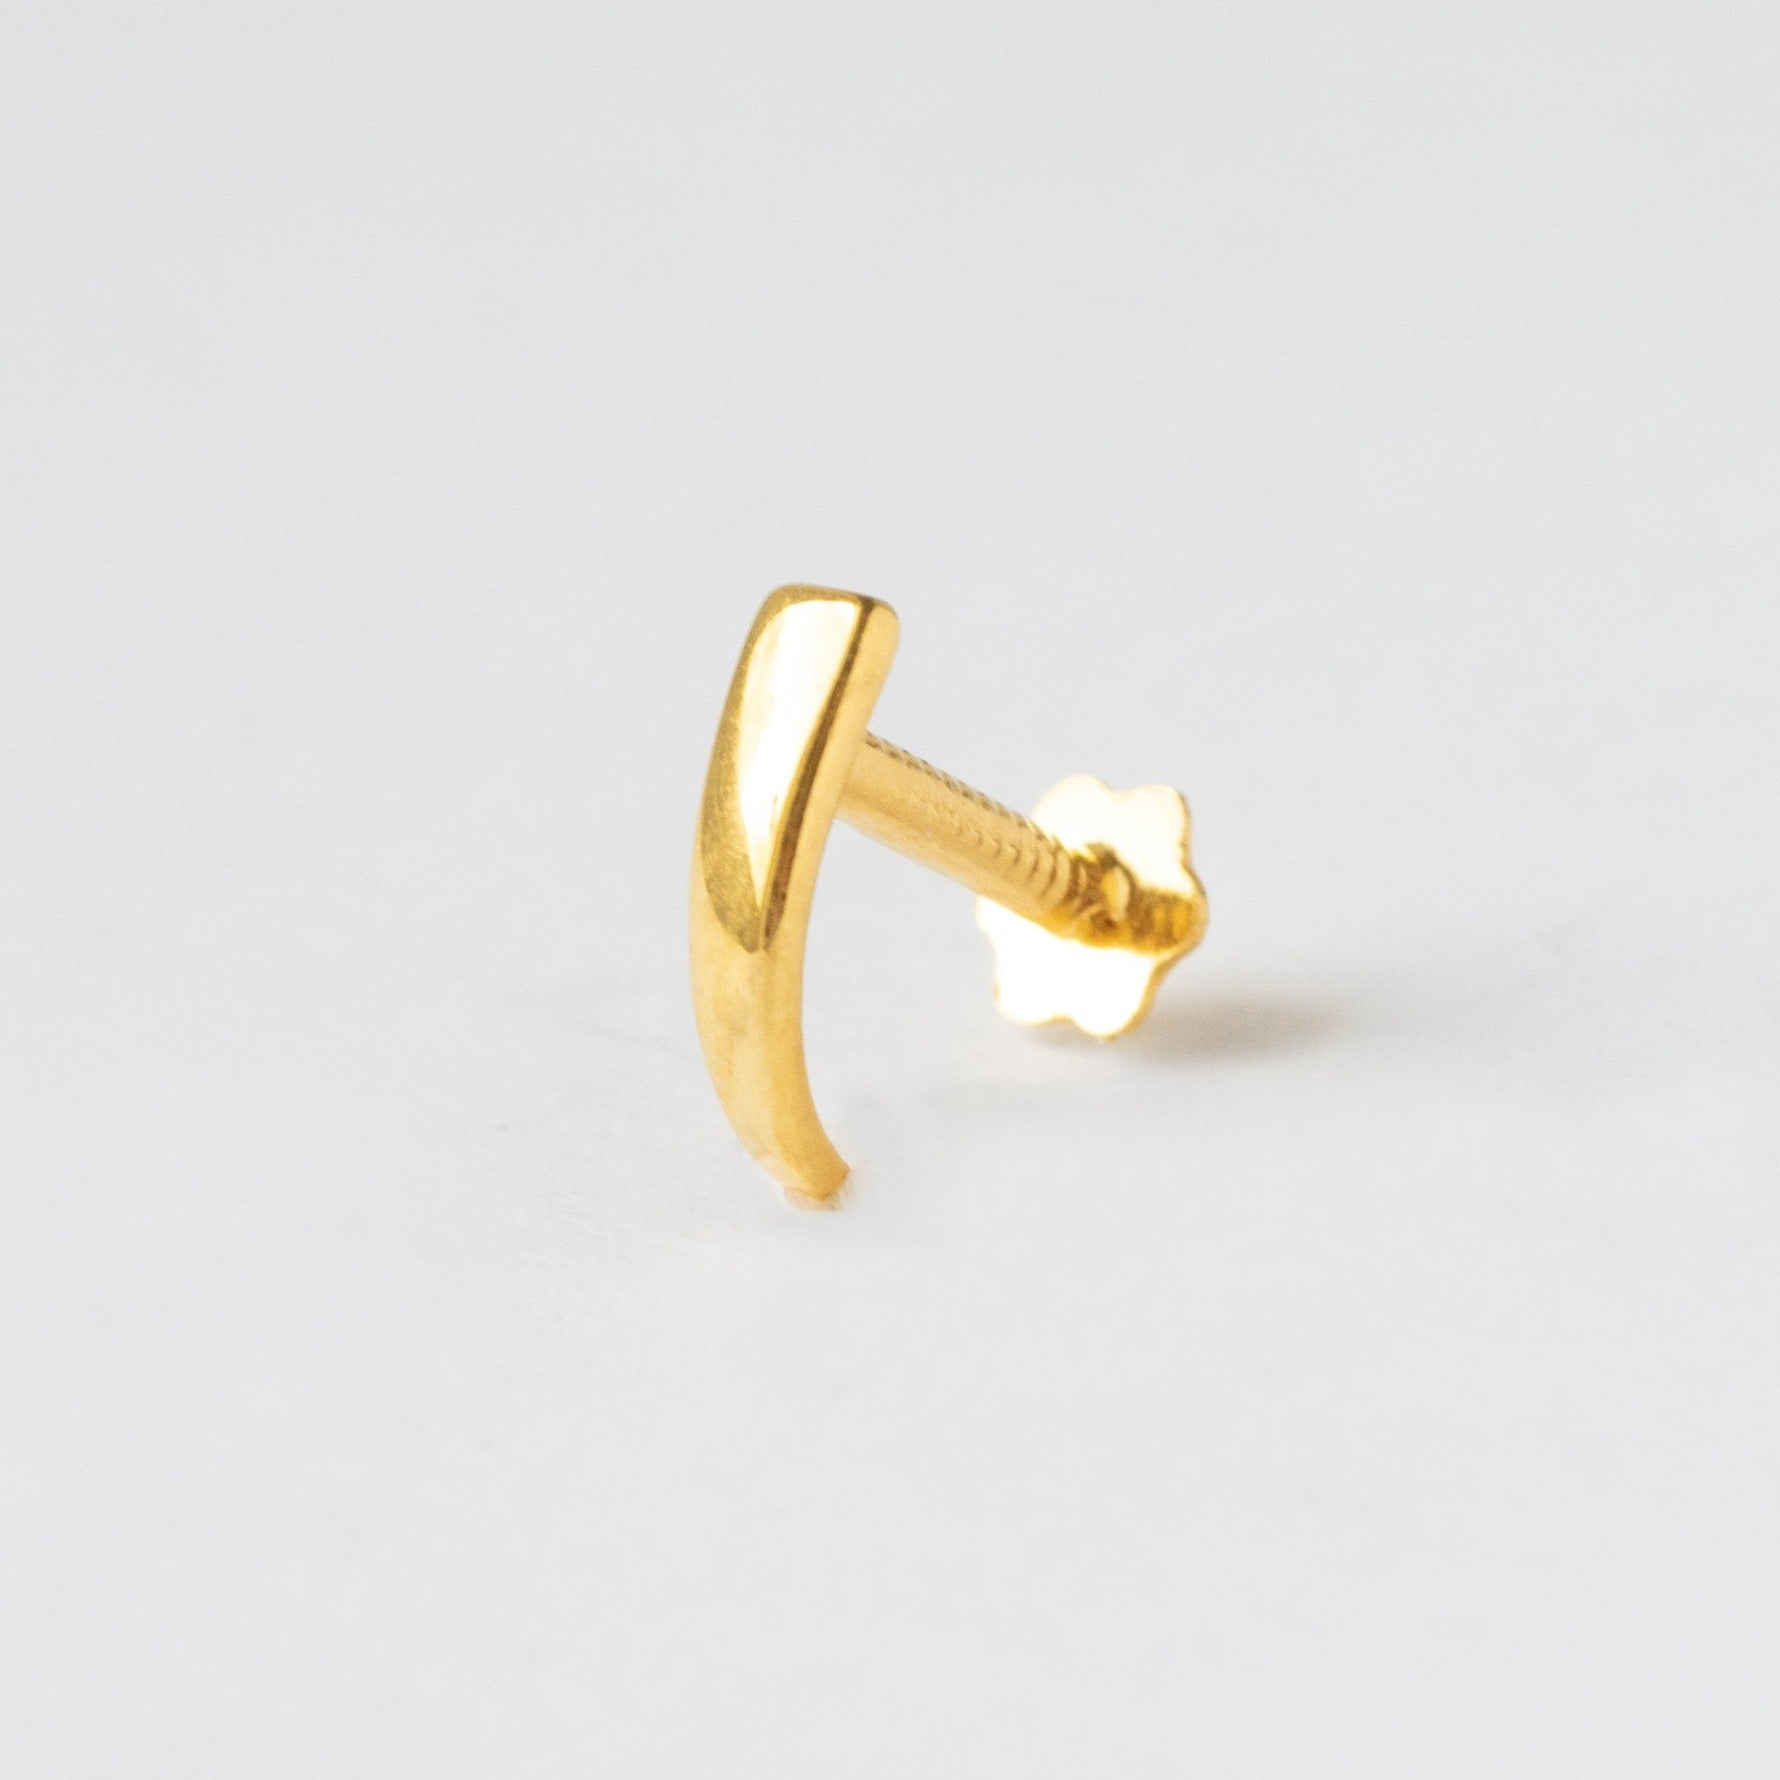 18ct Yellow Gold Faux Nose Ring with Screw Back Nose Stud NIP-5-610